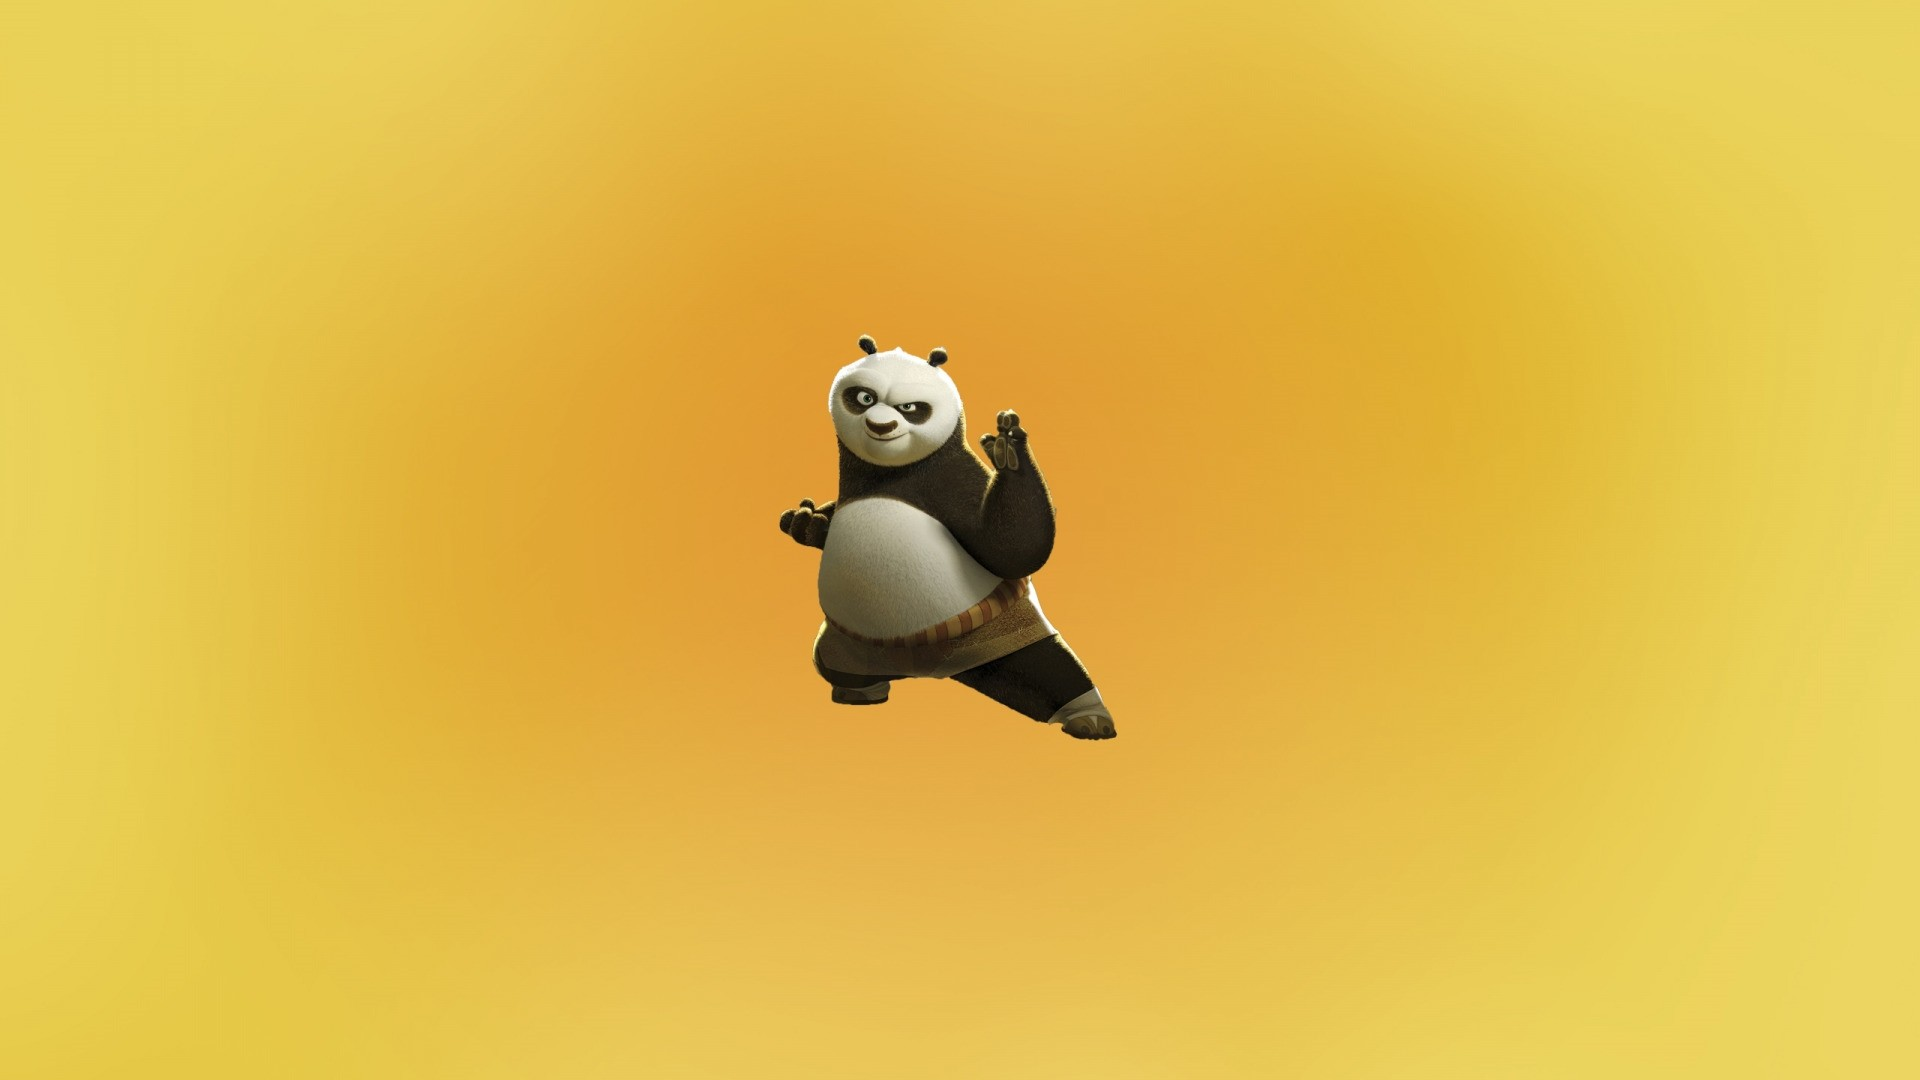 Panda Minimalist Desktop Wallpaper